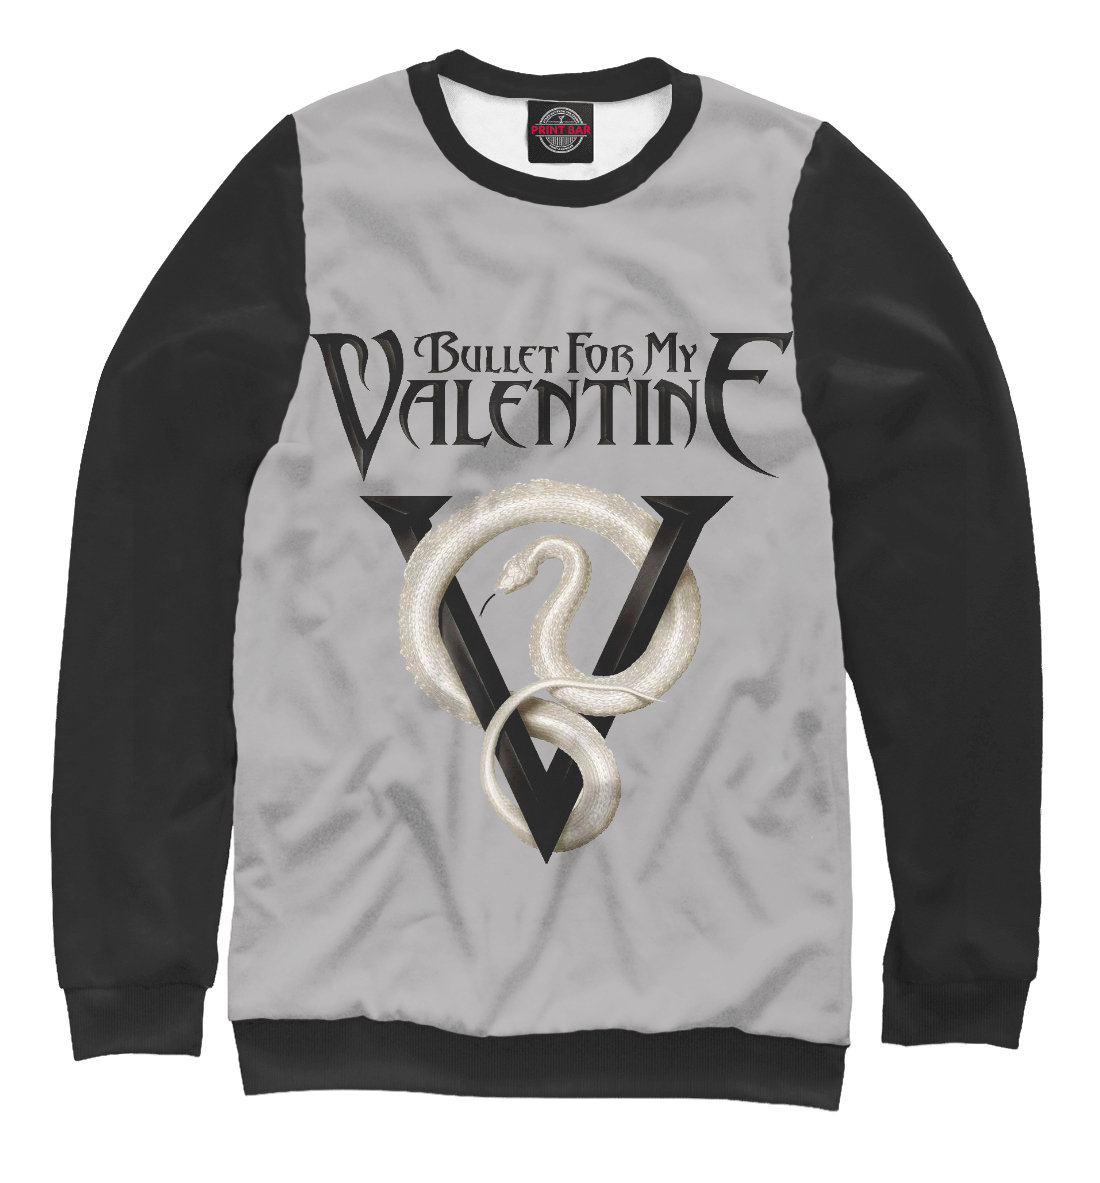 Купить Bullet for My Valentine Venom, Printbar, Свитшоты, BMV-399029-swi-2